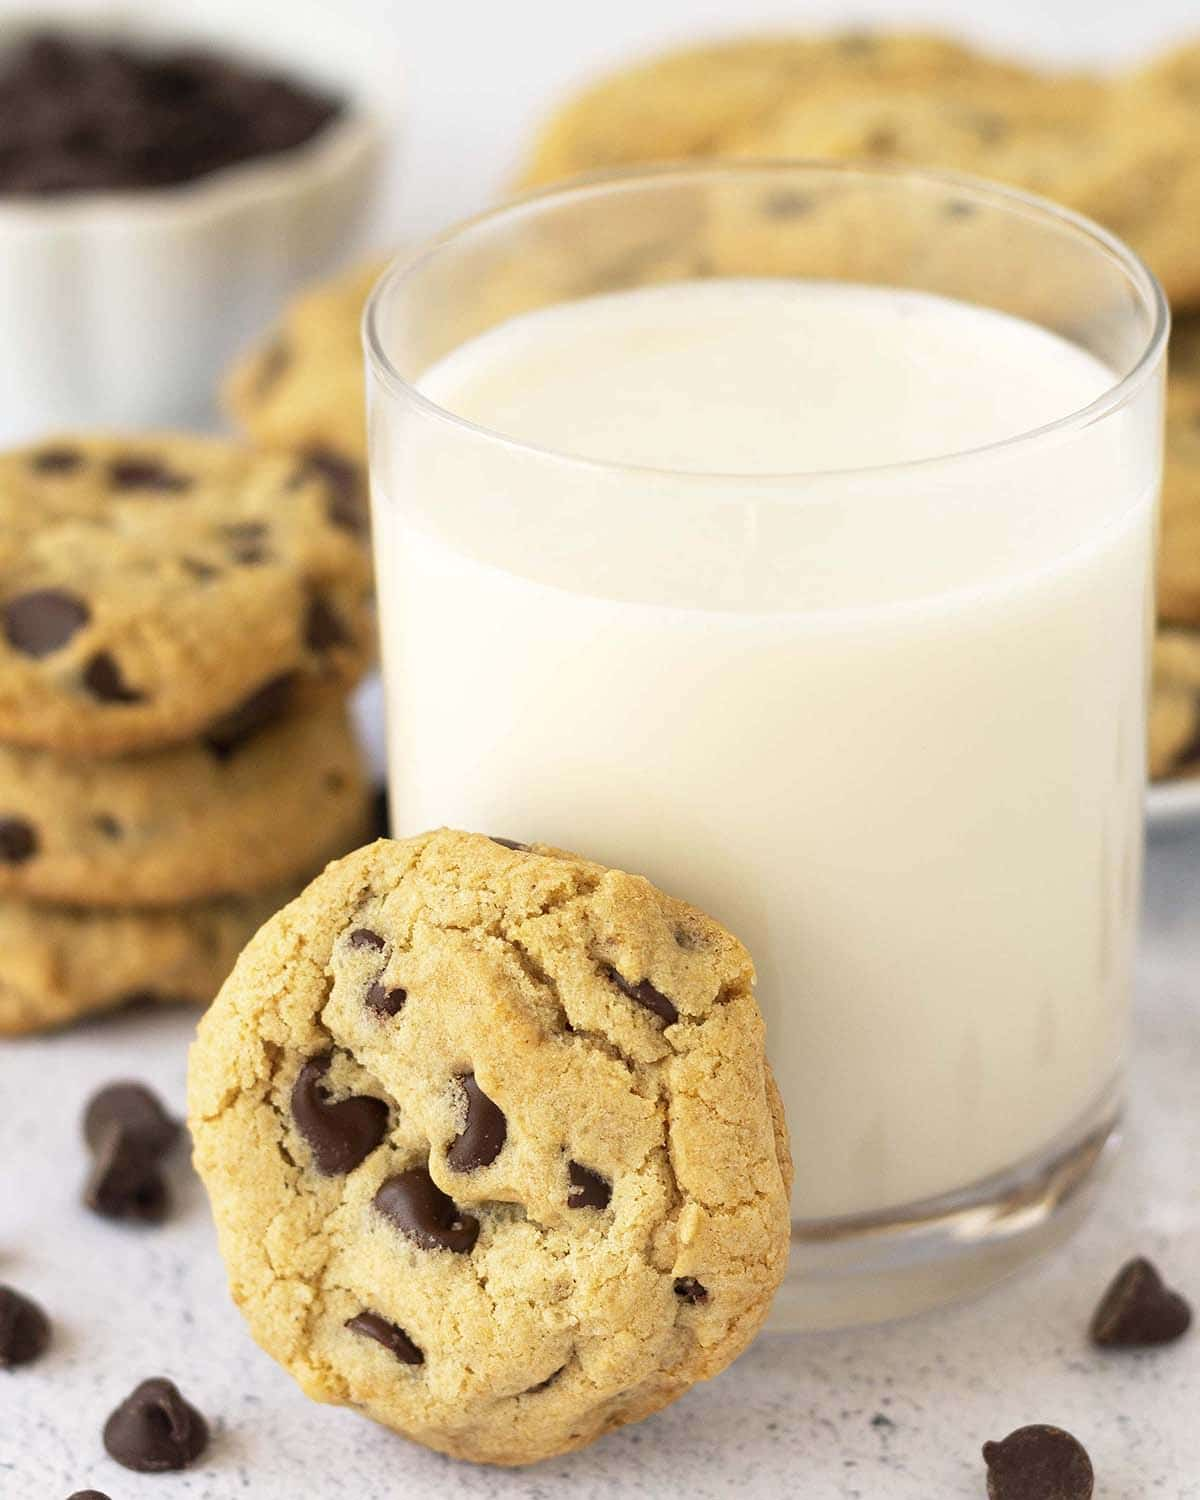 A dairy and egg free chocolate chip cookie leaning against a glass of almond milk.